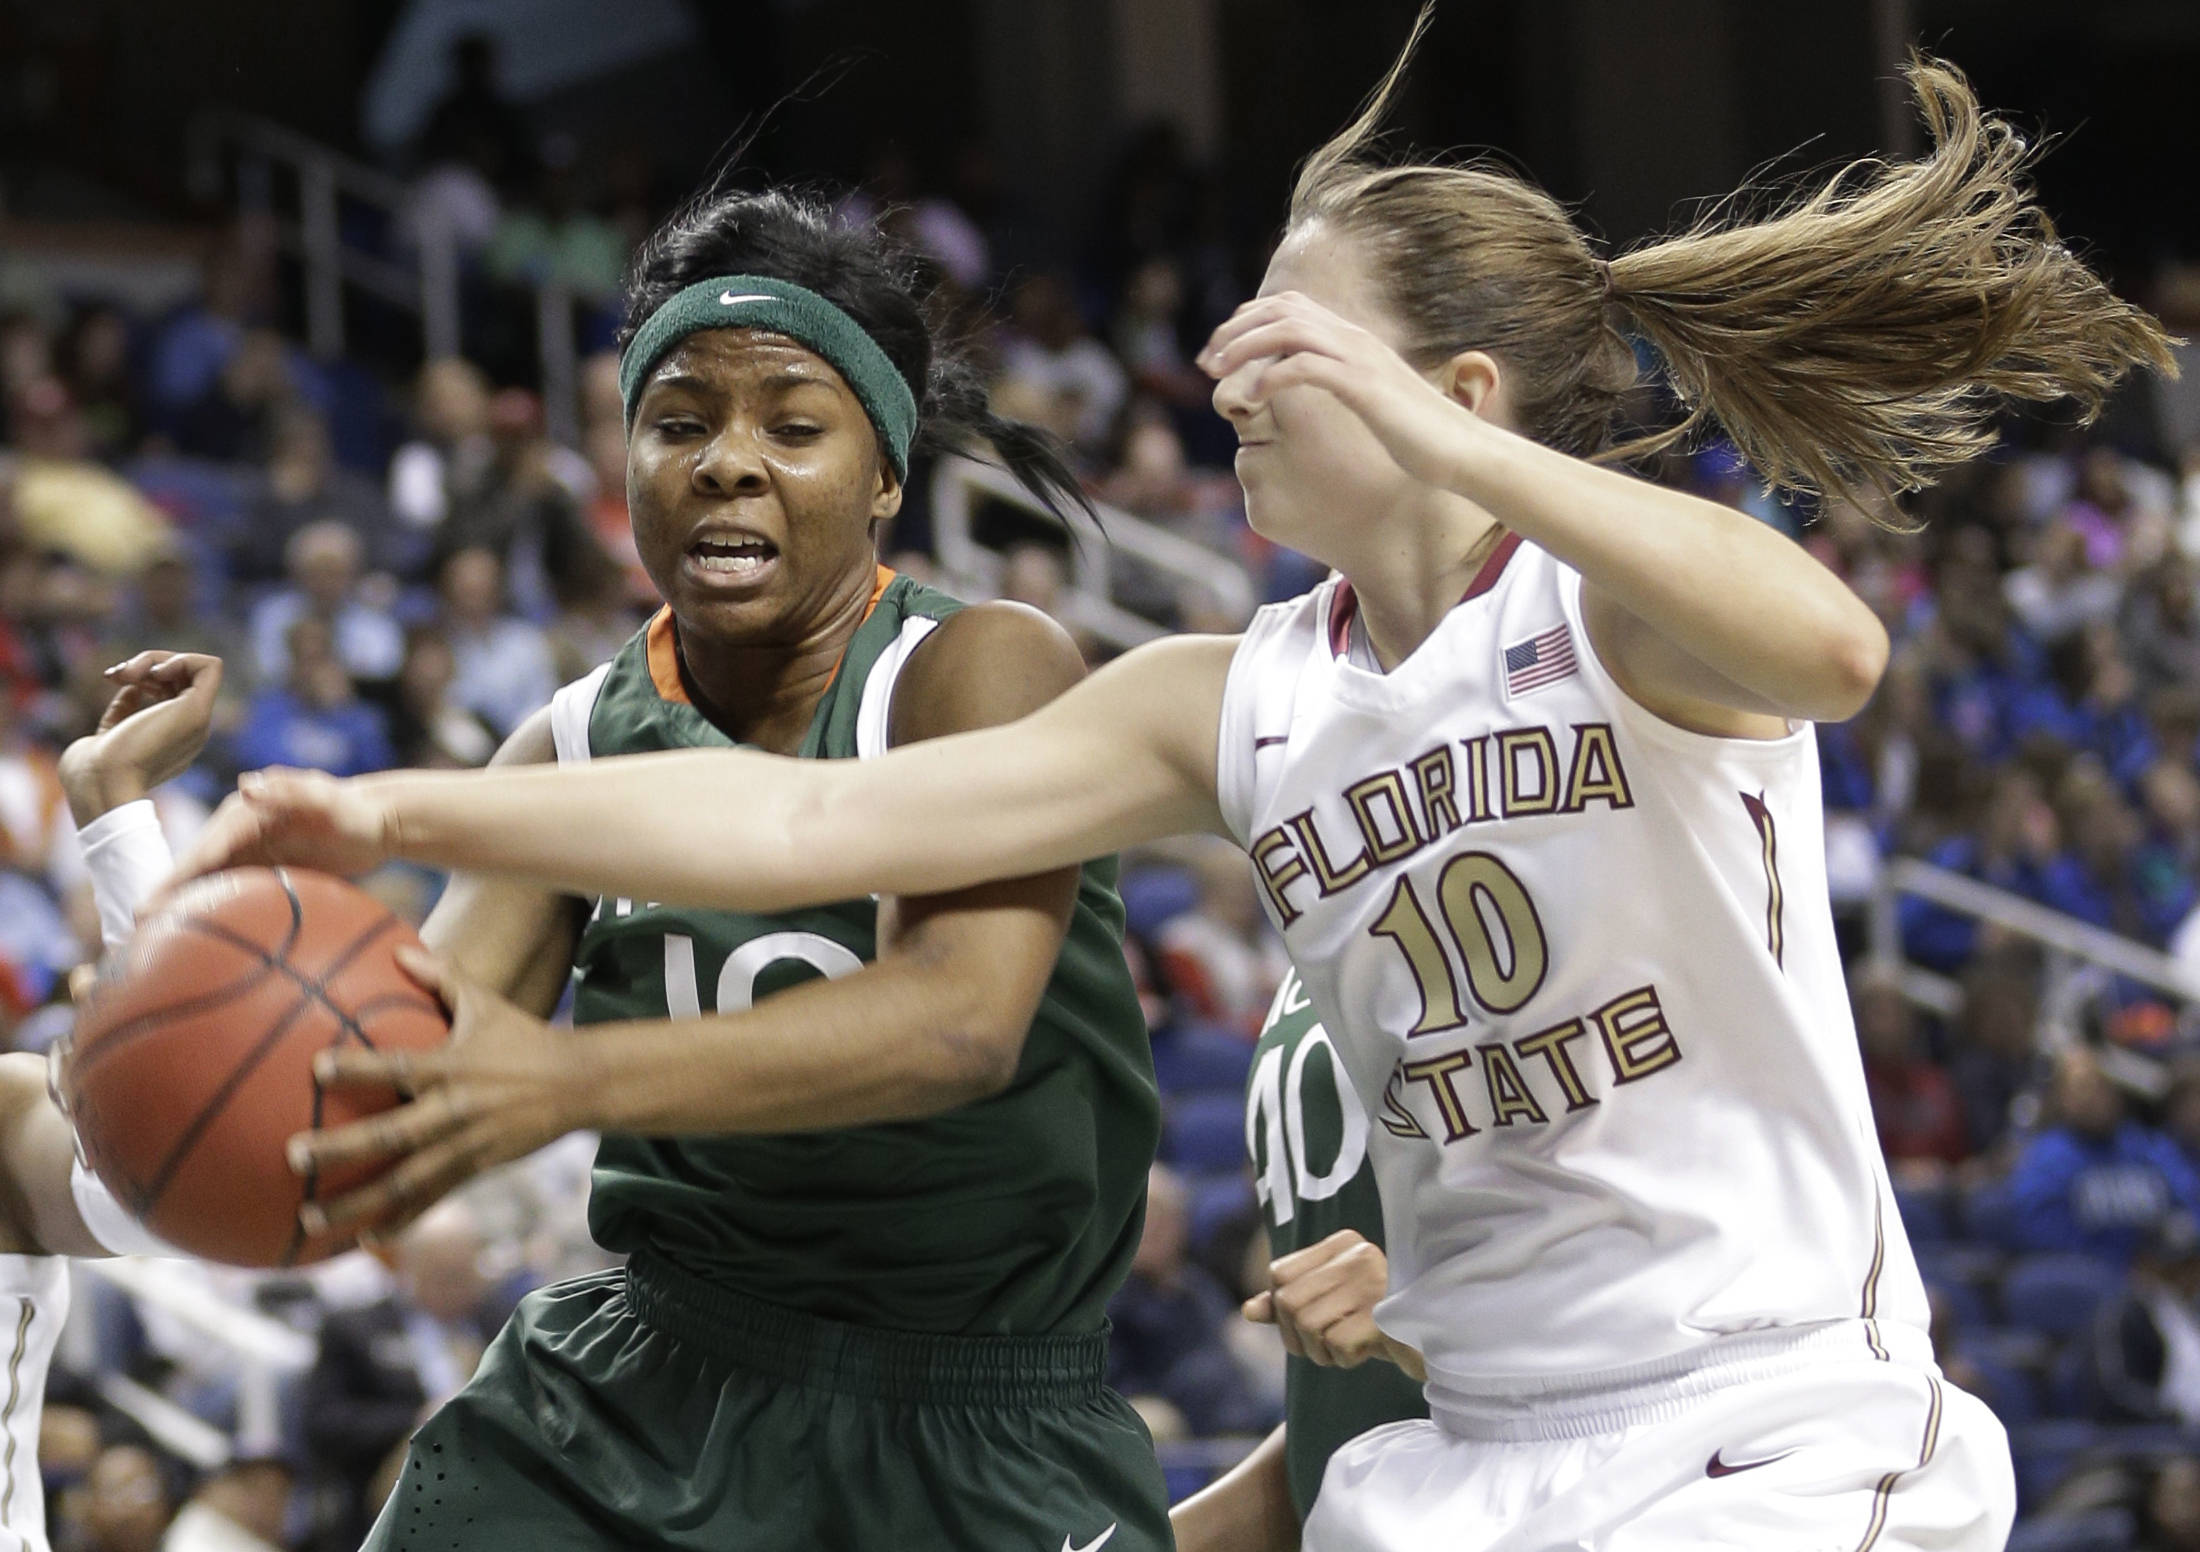 Miami's Michelle Woods, left, and Florida State's Leonor Rodriguez, right, battle for a rebound. (AP Photo/Chuck Burton)